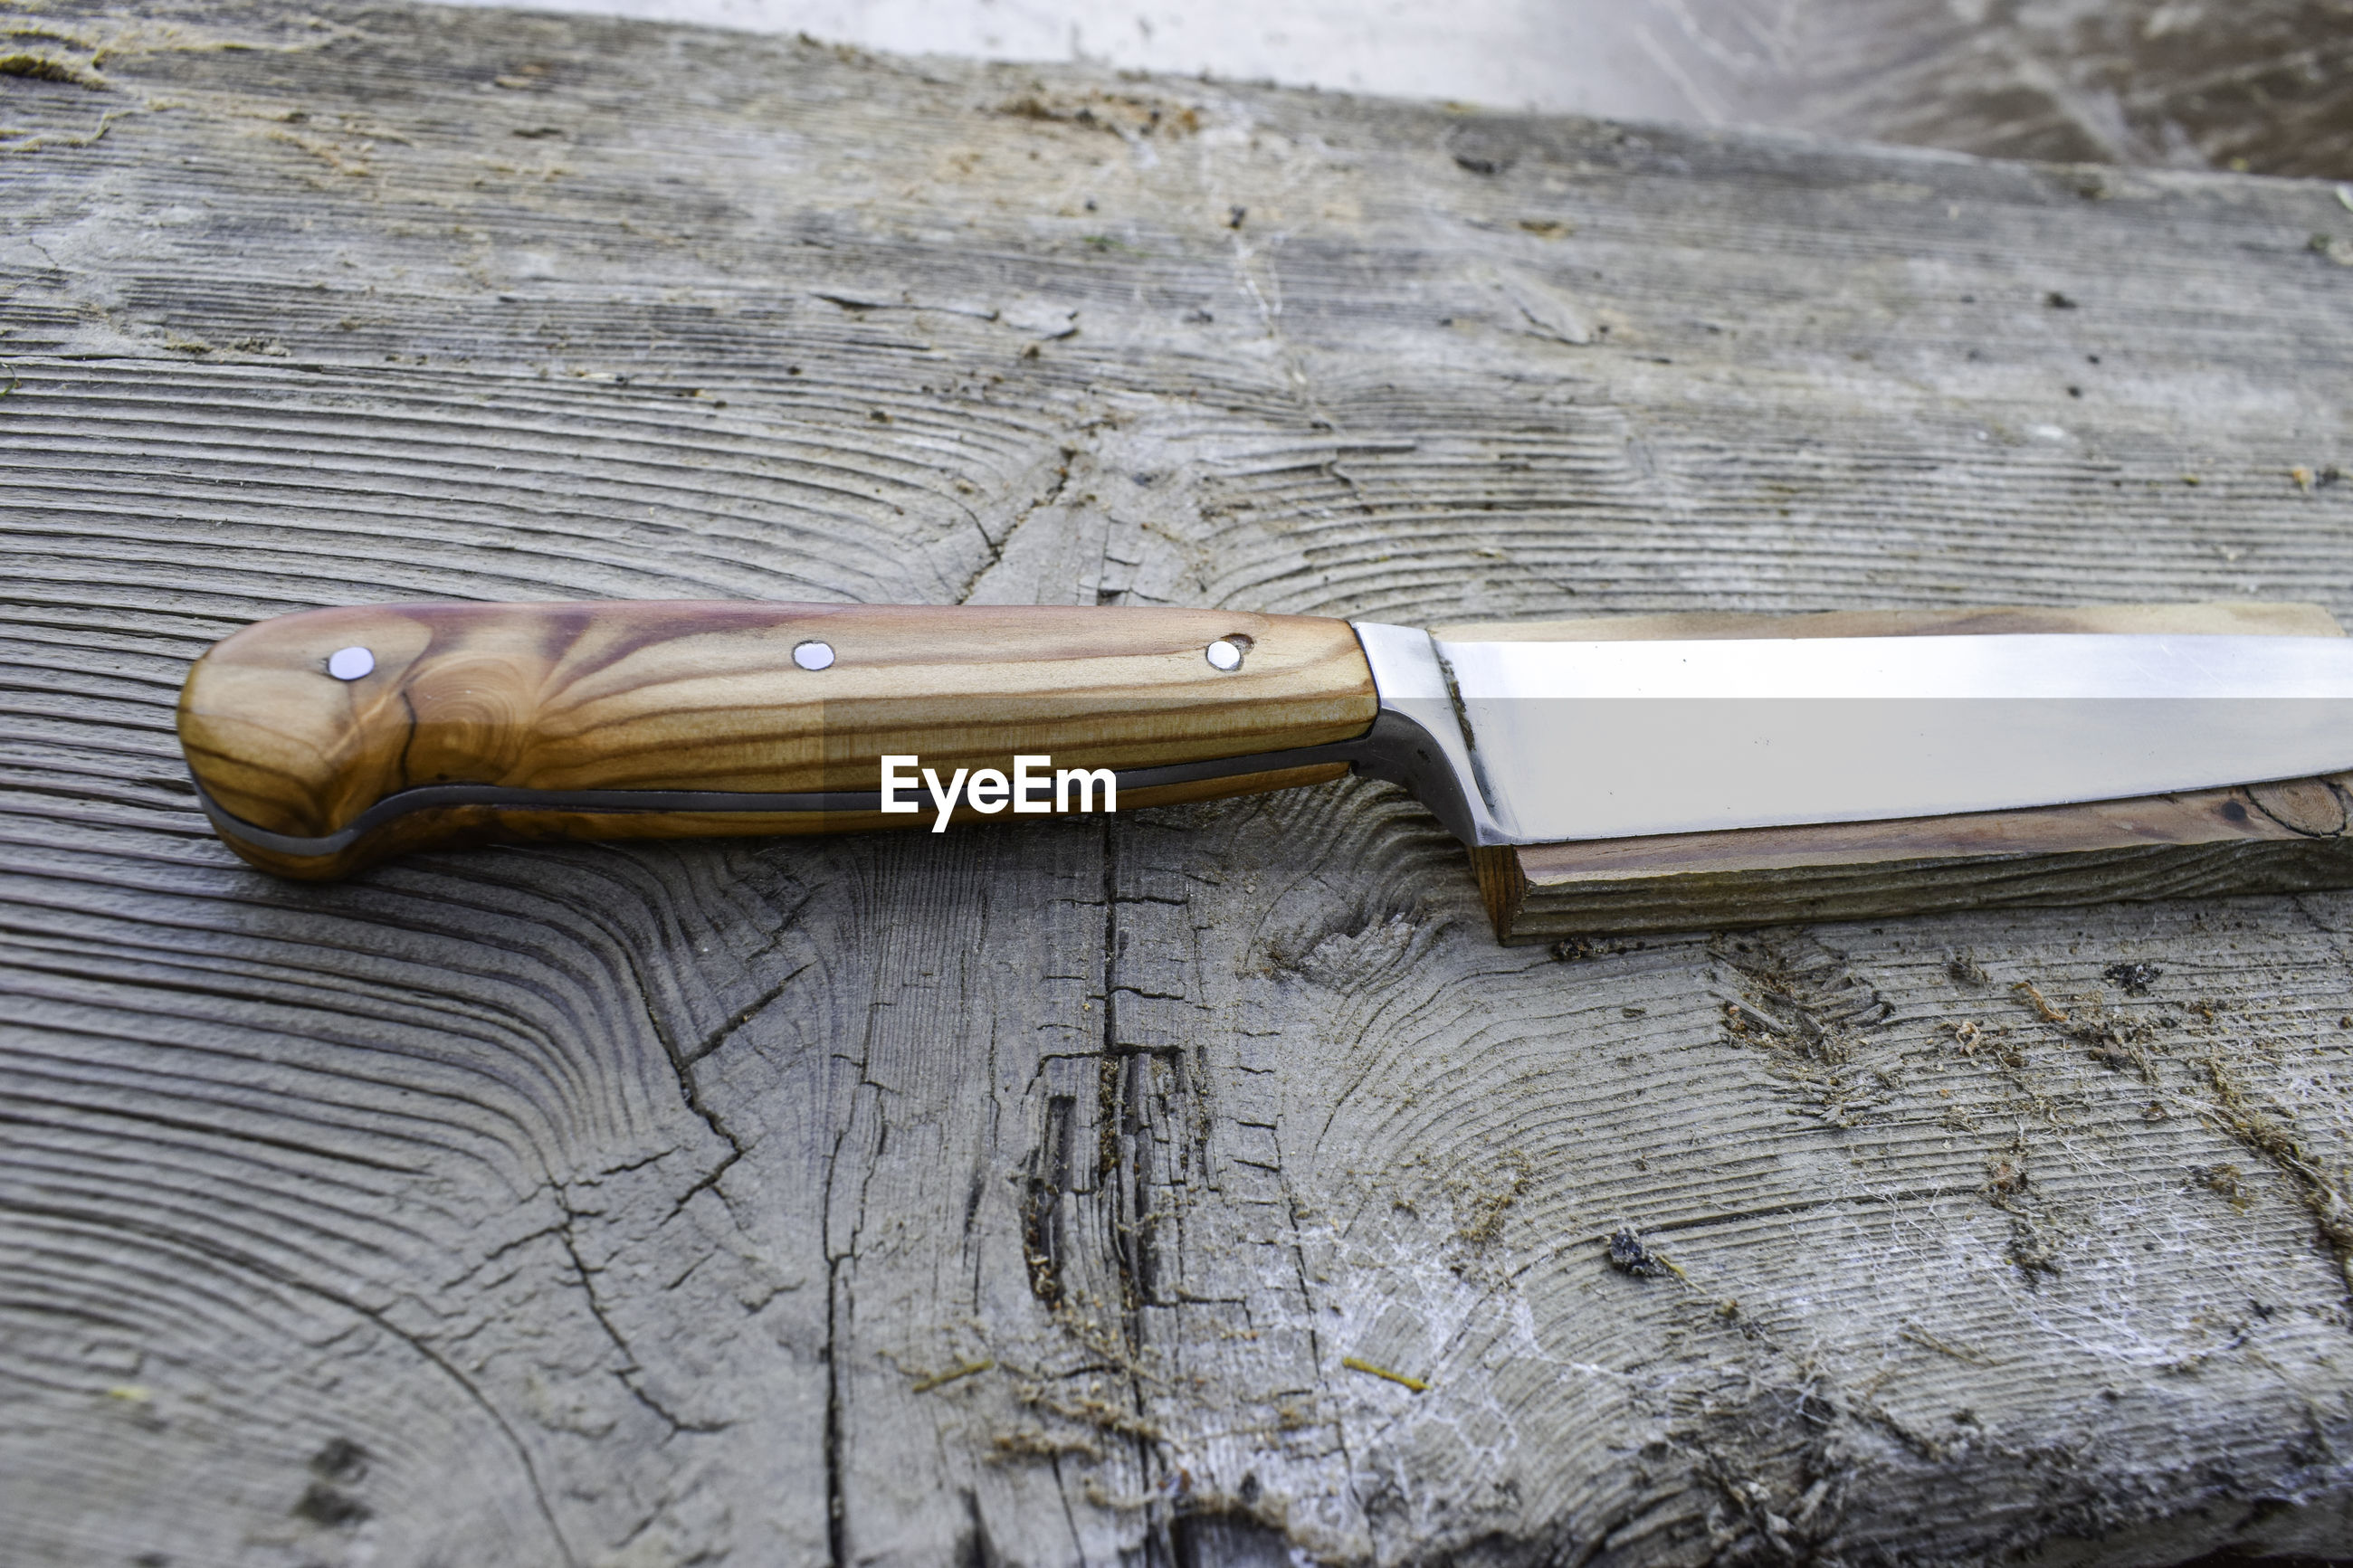 Close-up of knife on table